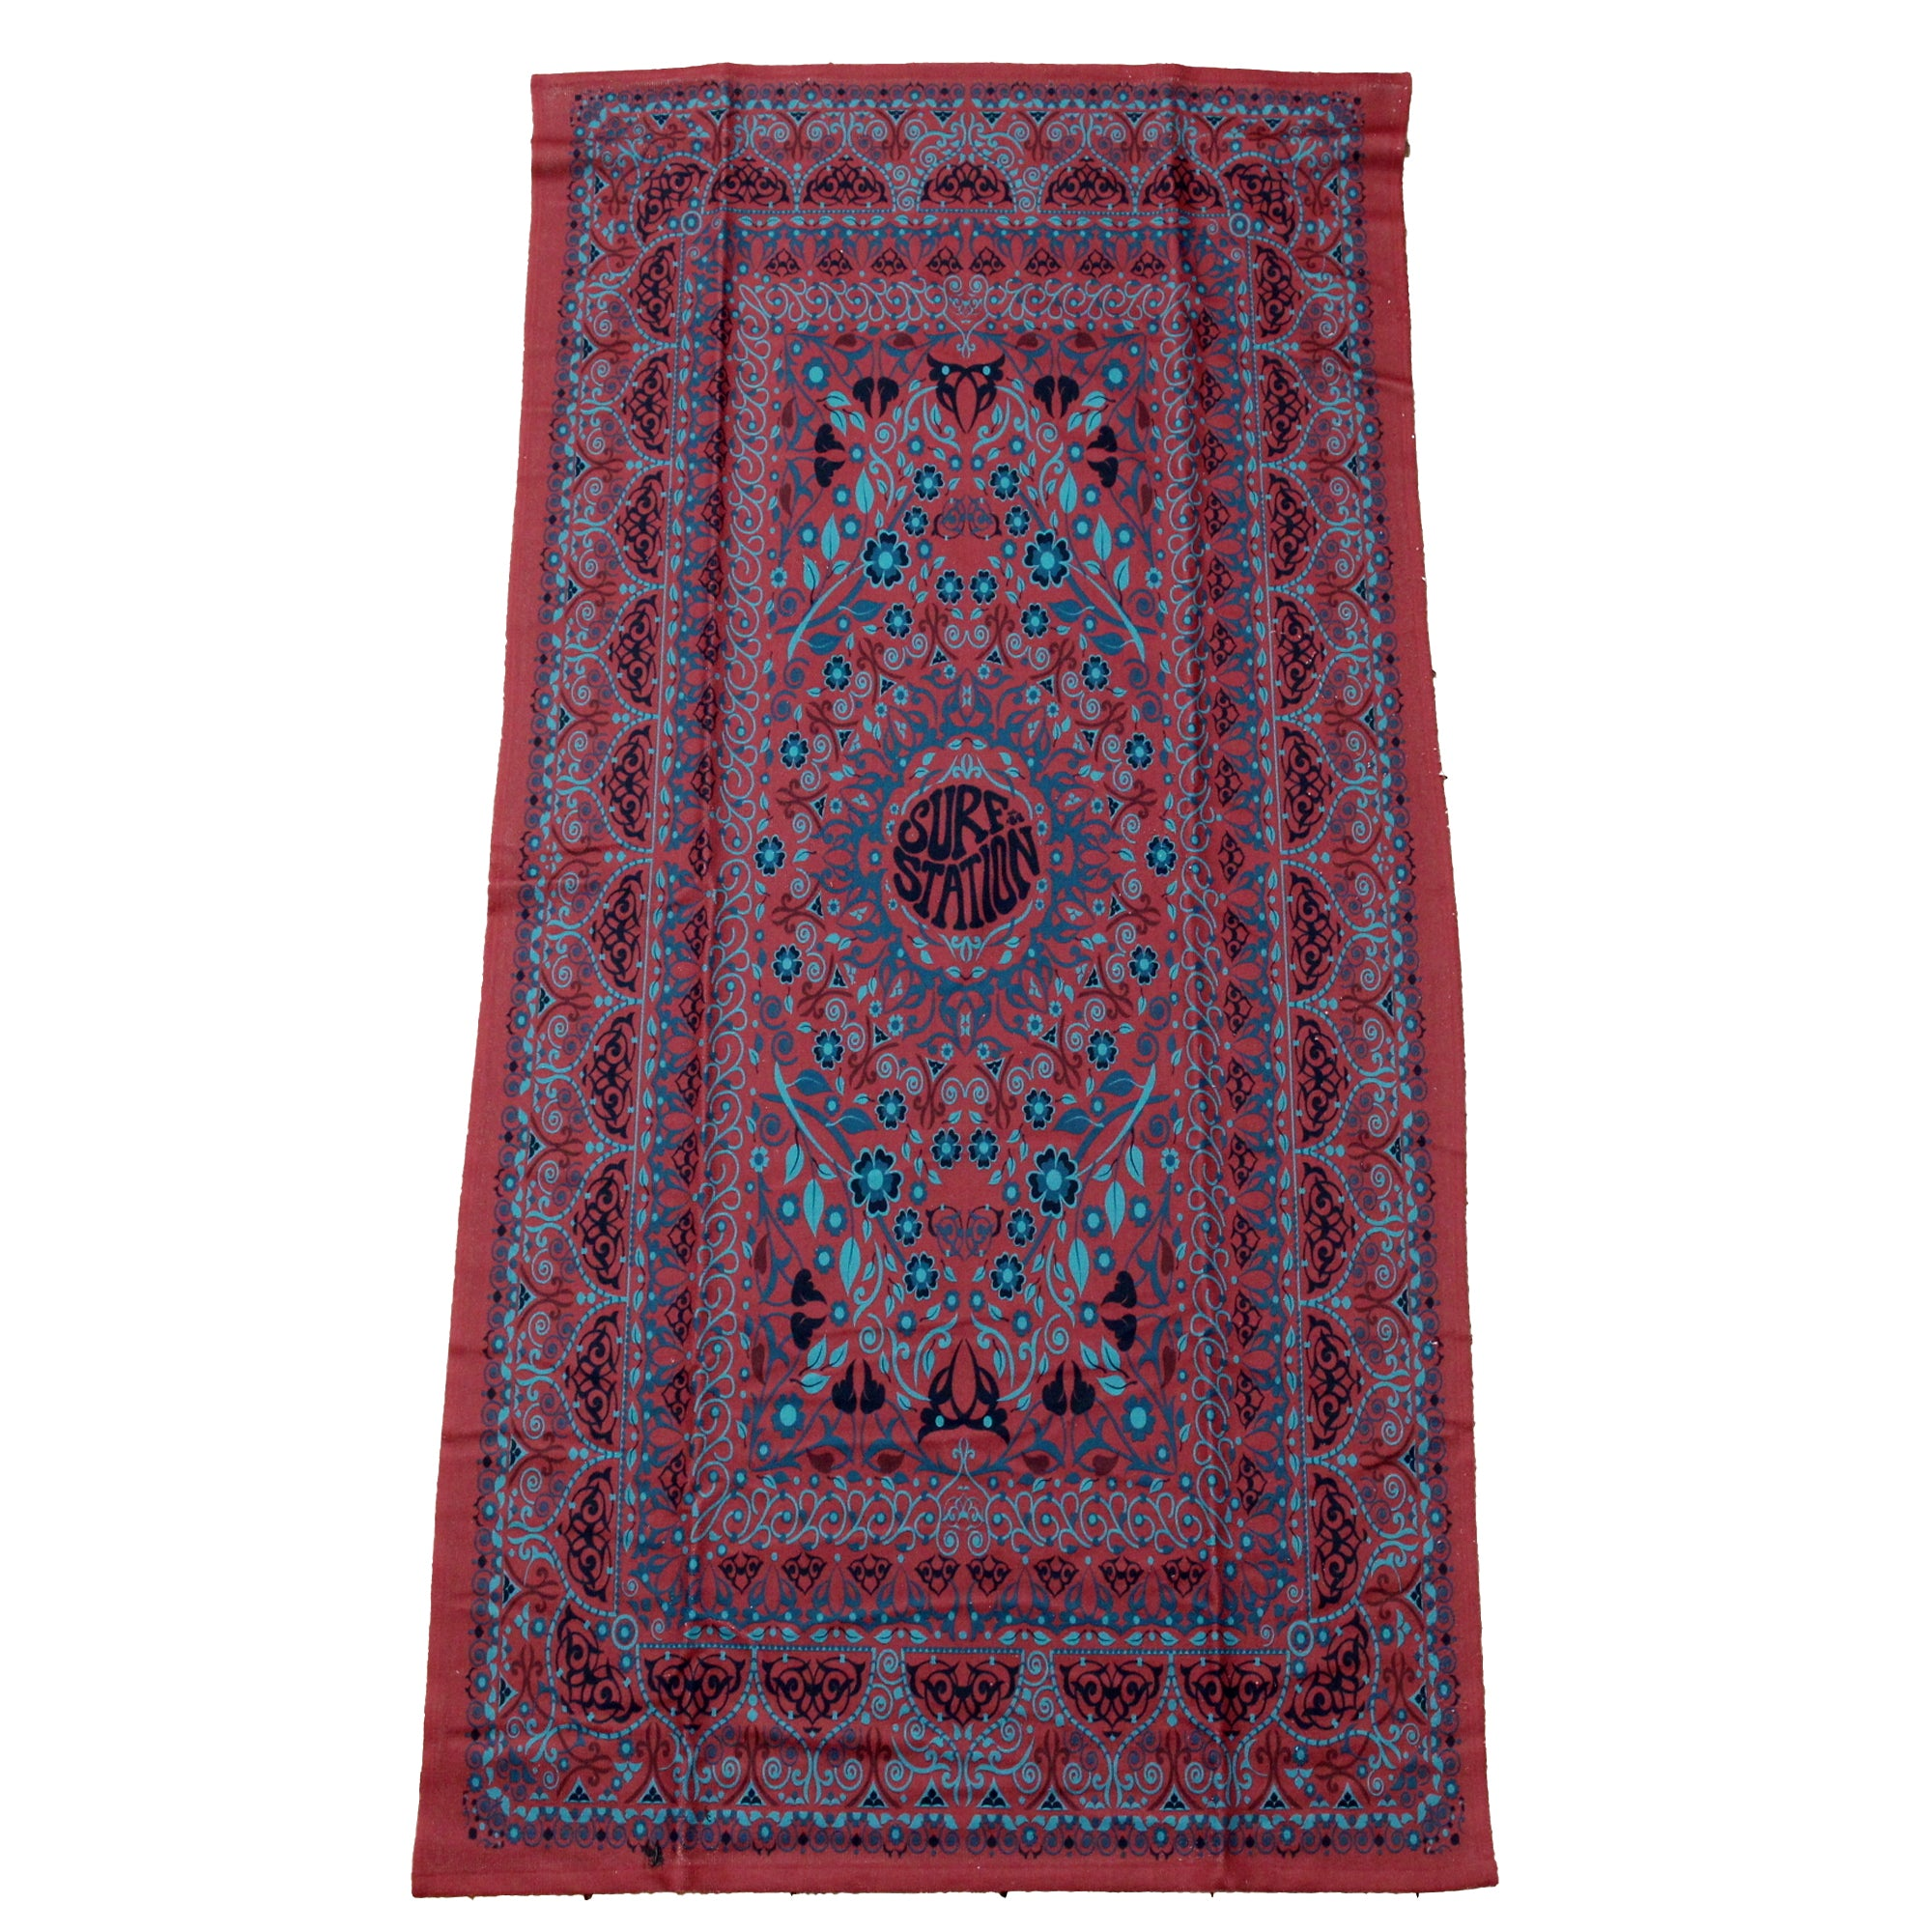 Surf Station Beach Towel - Persian